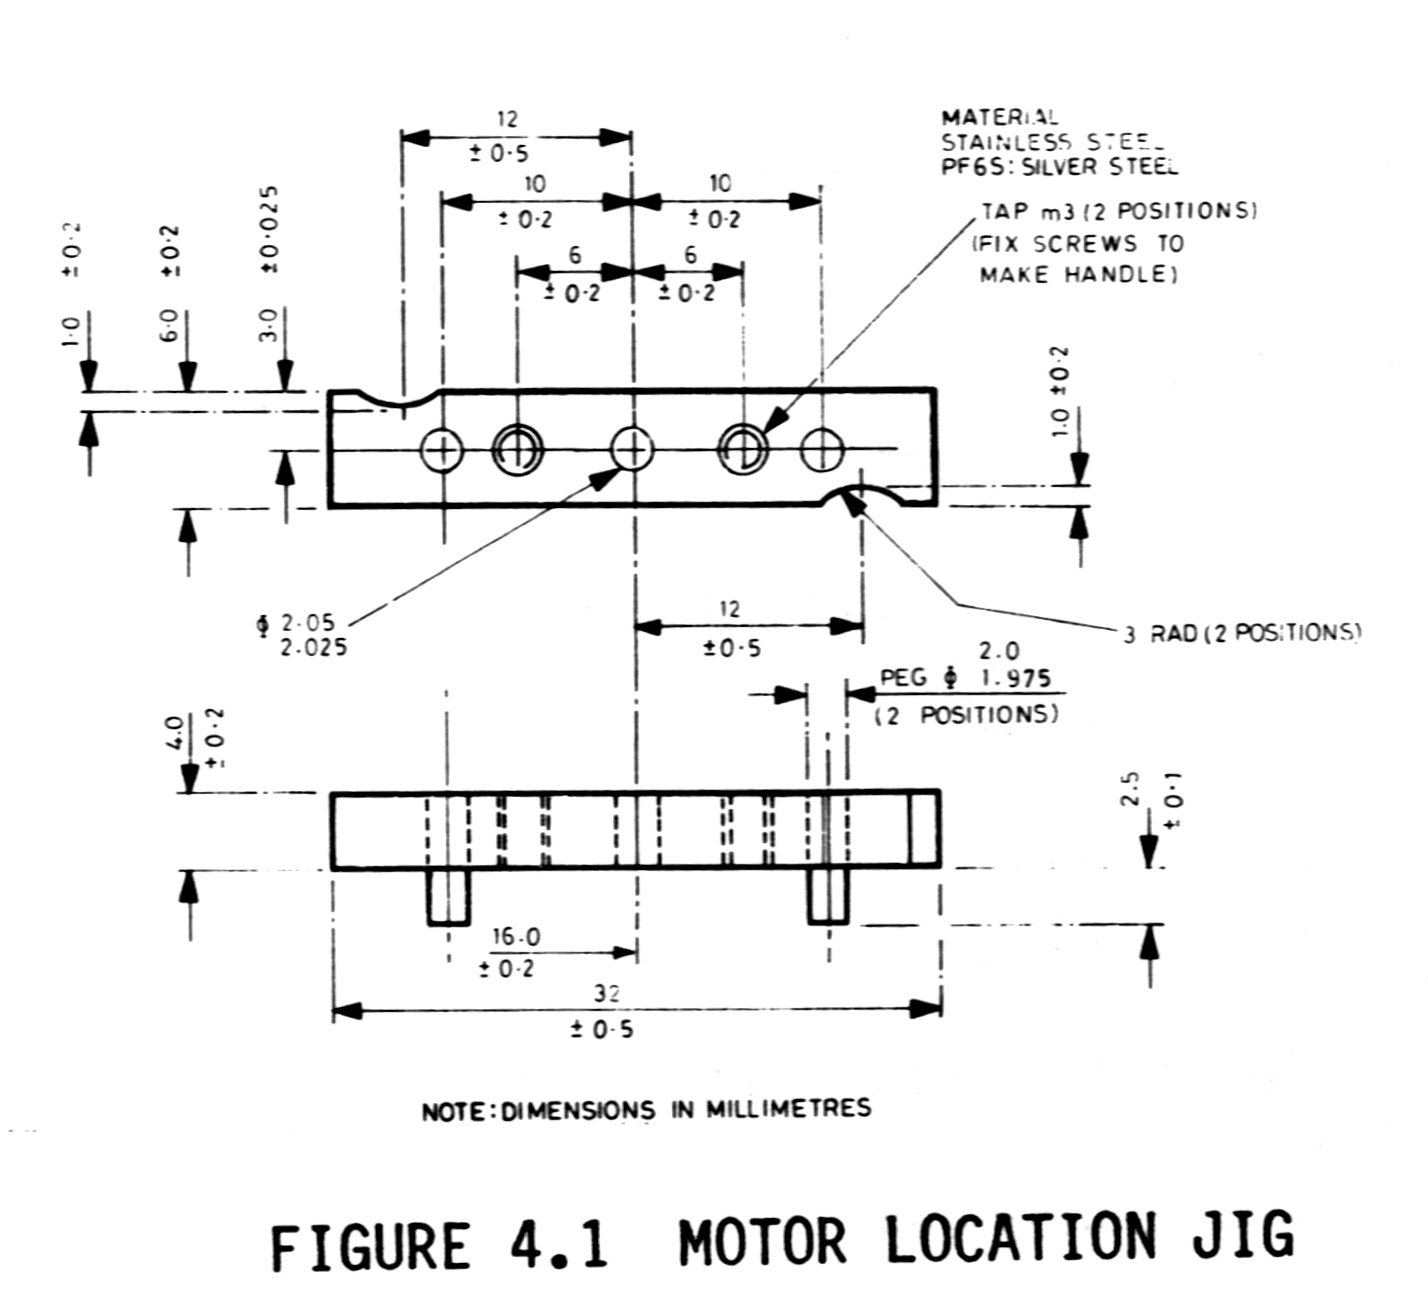 Motor-location-jig.jpg